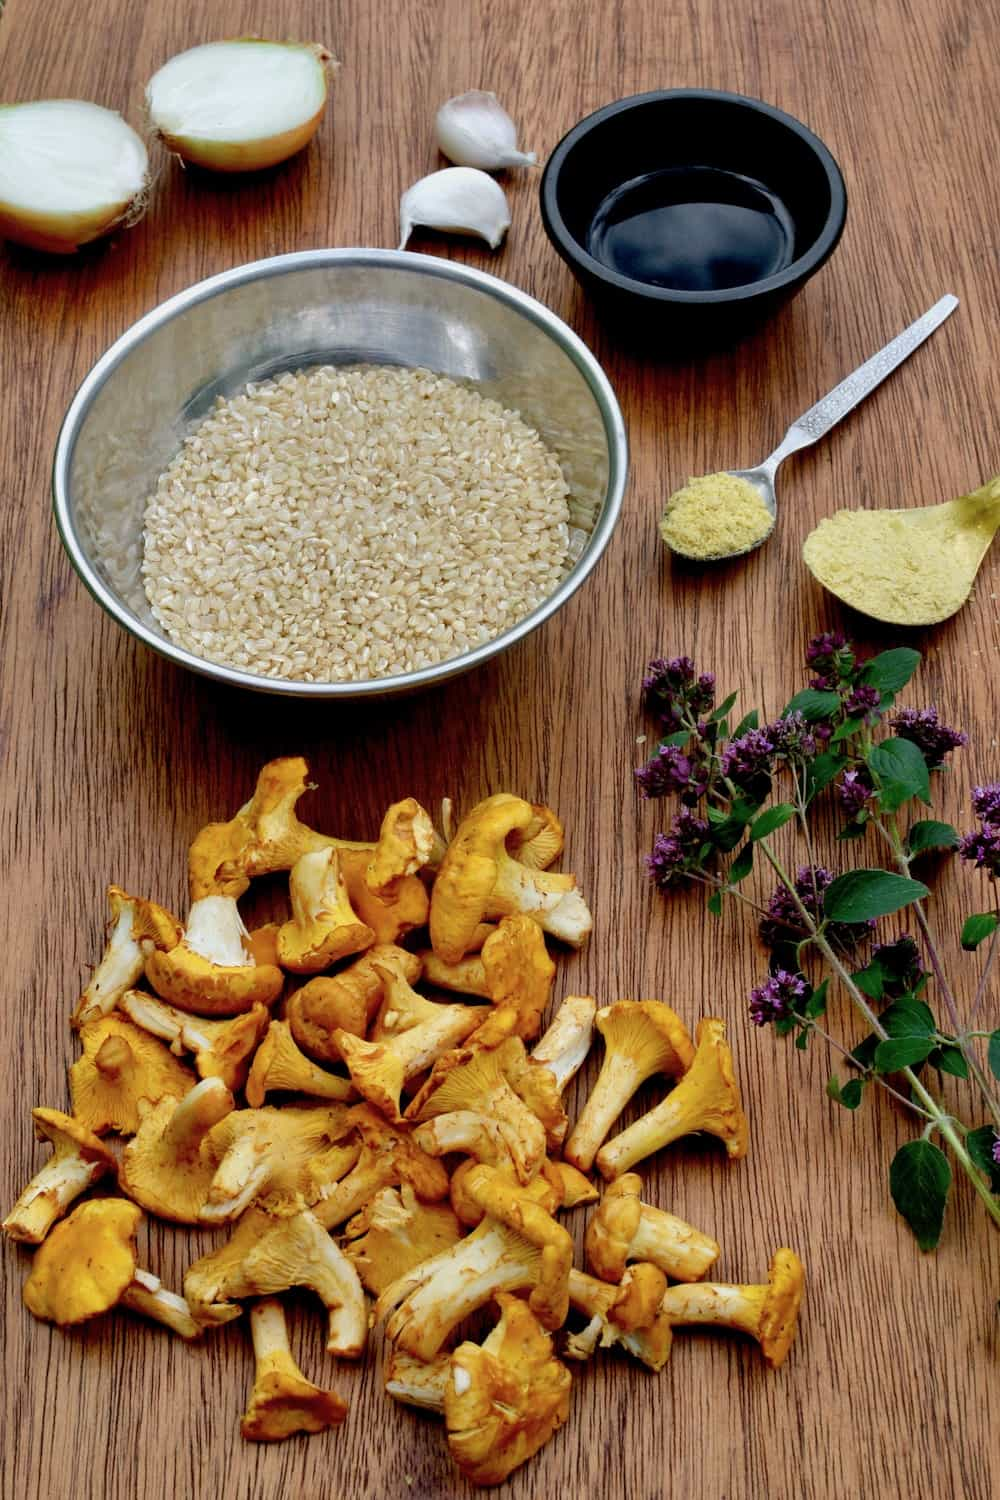 The ingredients for a vegan chanterelle risotto, ready to start cooking